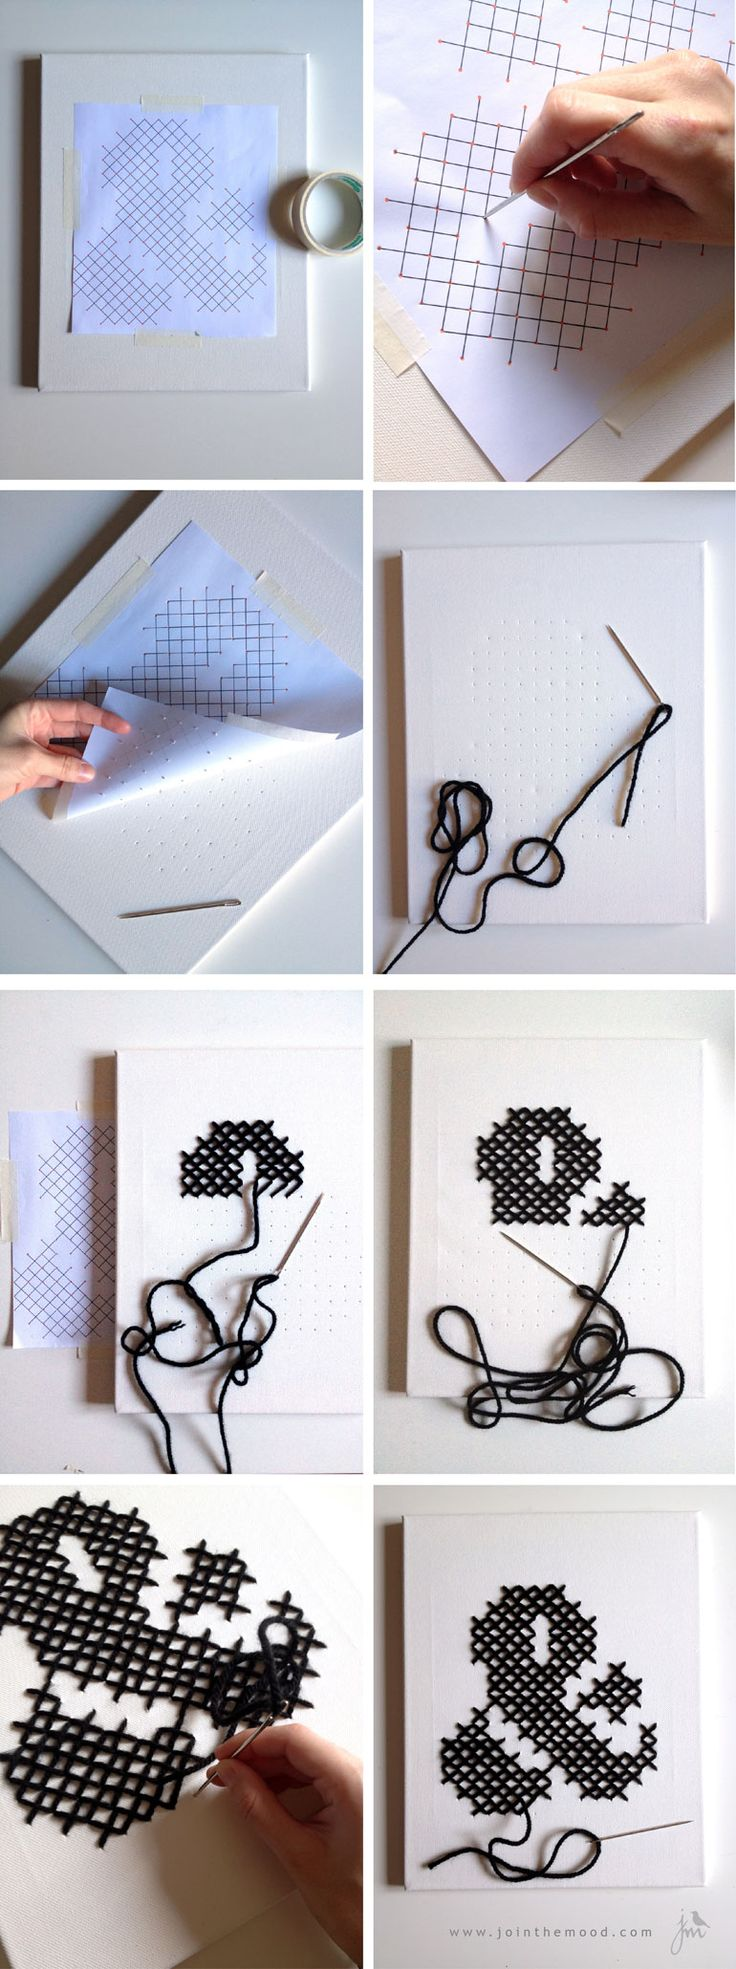 DIY: easy ampersand wall art